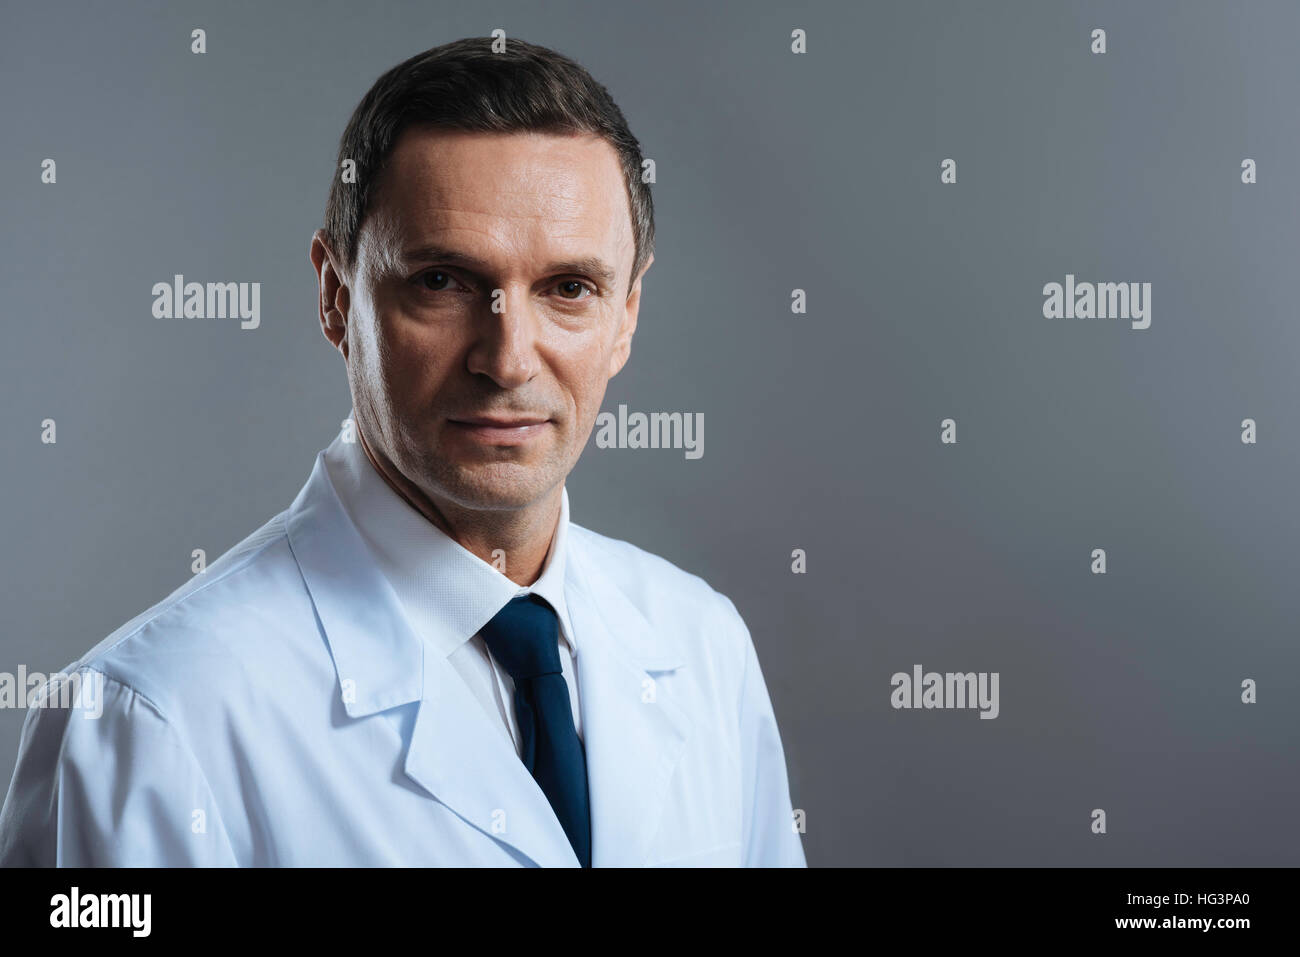 Portrait of a doctor standing on grey background - Stock Image